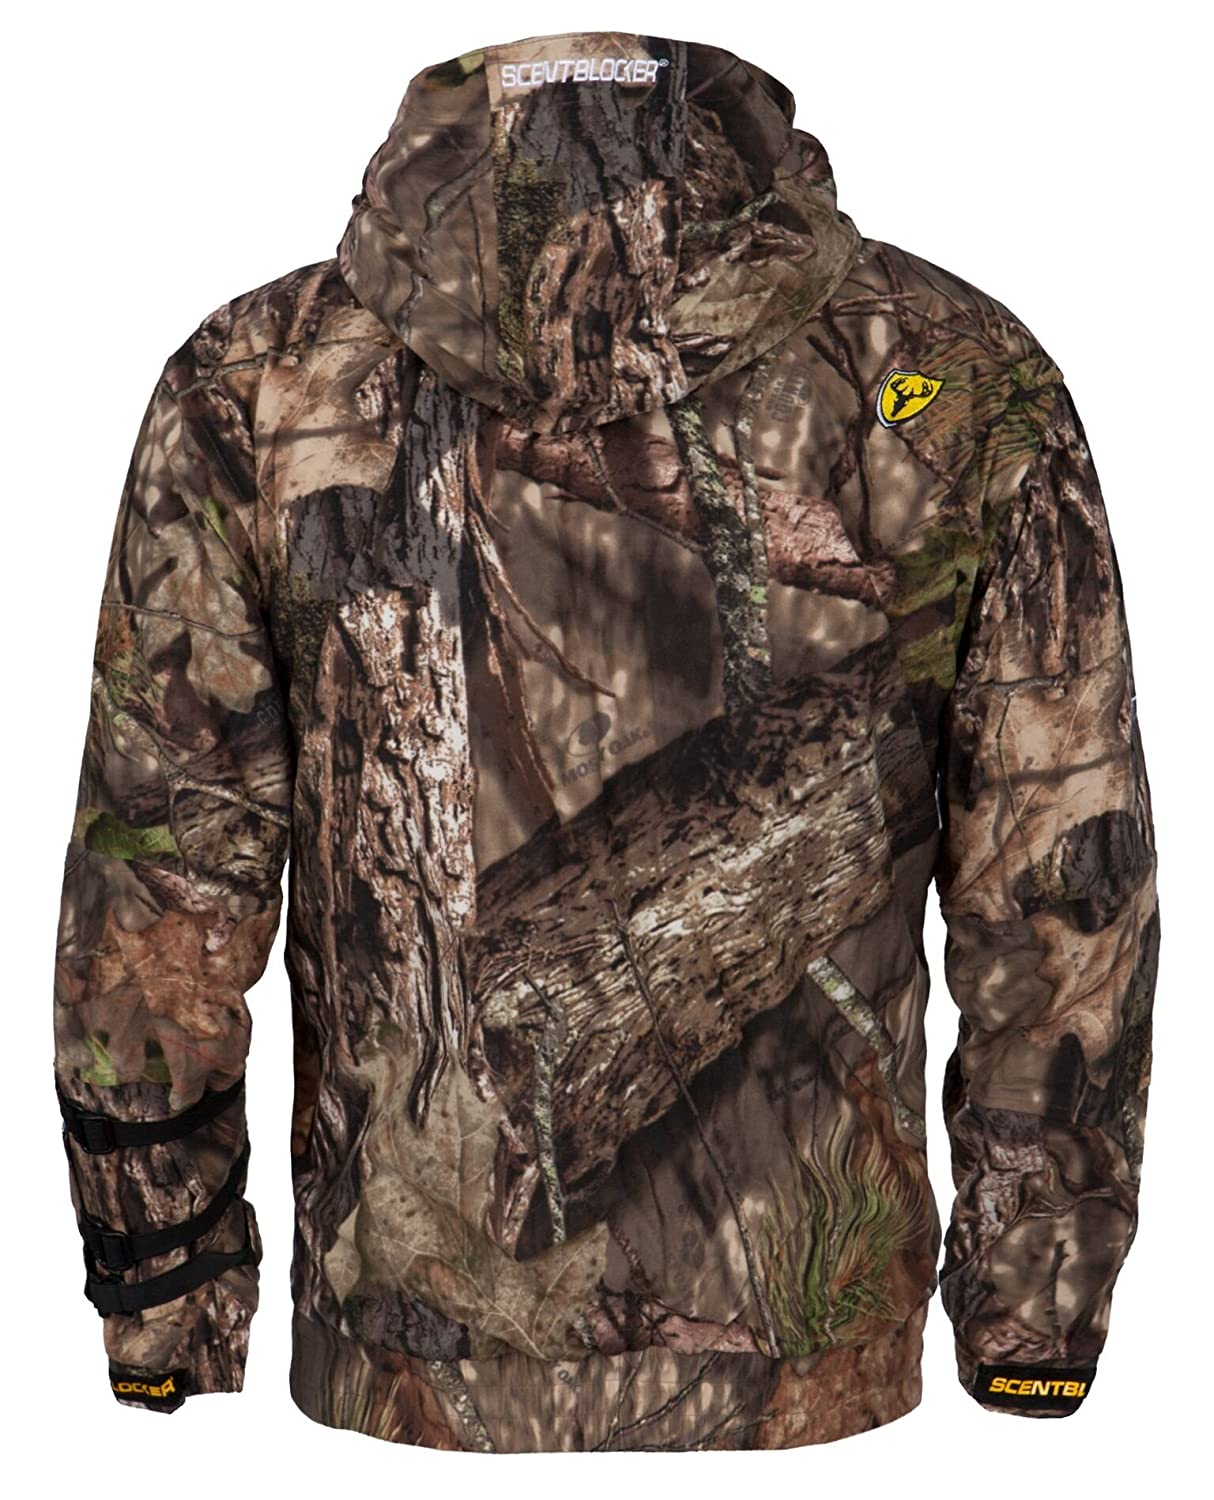 77cdce4df475b Amazon.com : Scent Blocker Outfitter Jacket, Mossy Oak Country : Sports &  Outdoors